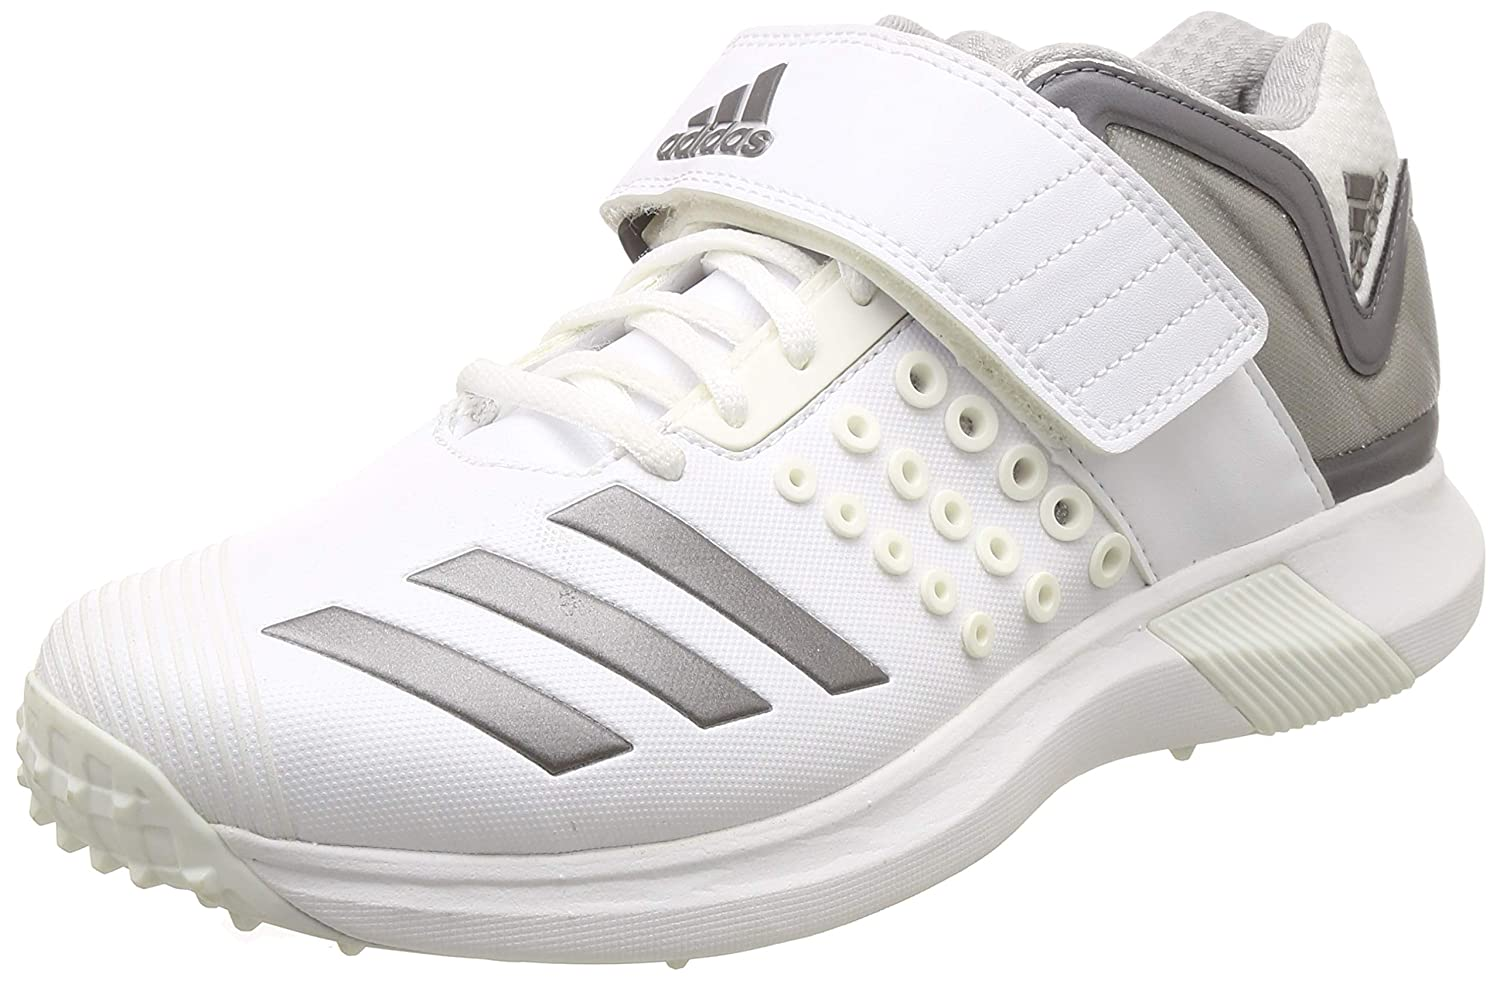 Adipower Vector Mid Cricket Shoes